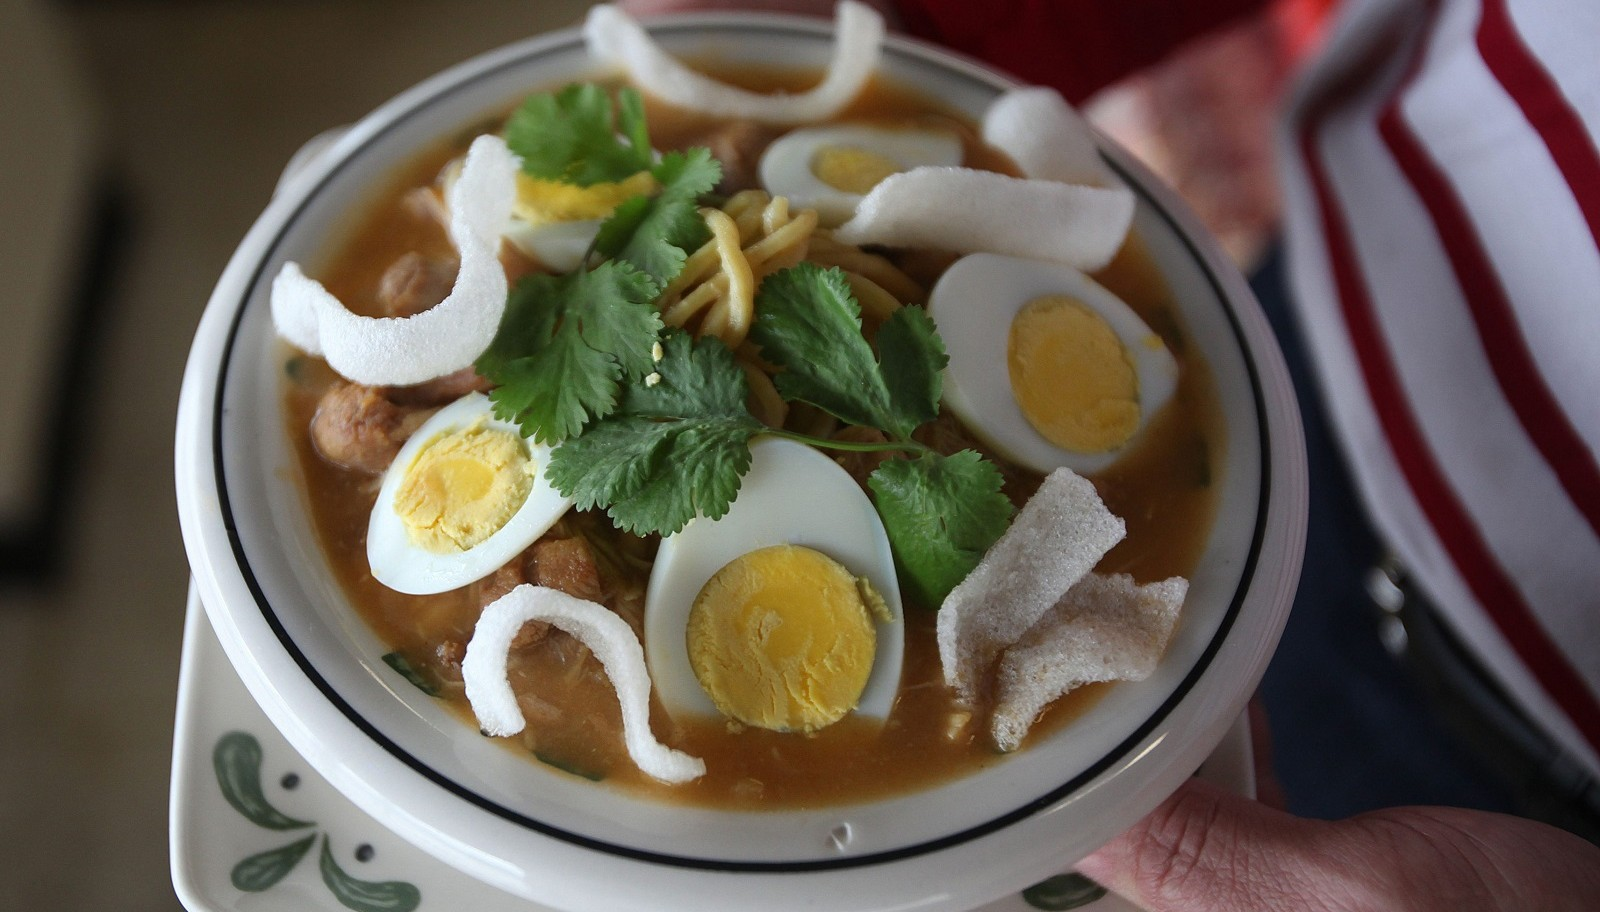 Bowl of Own No Koksware (Burmese chicken noodle soup) from Sun Restaurant. (Buffalo News file photo)